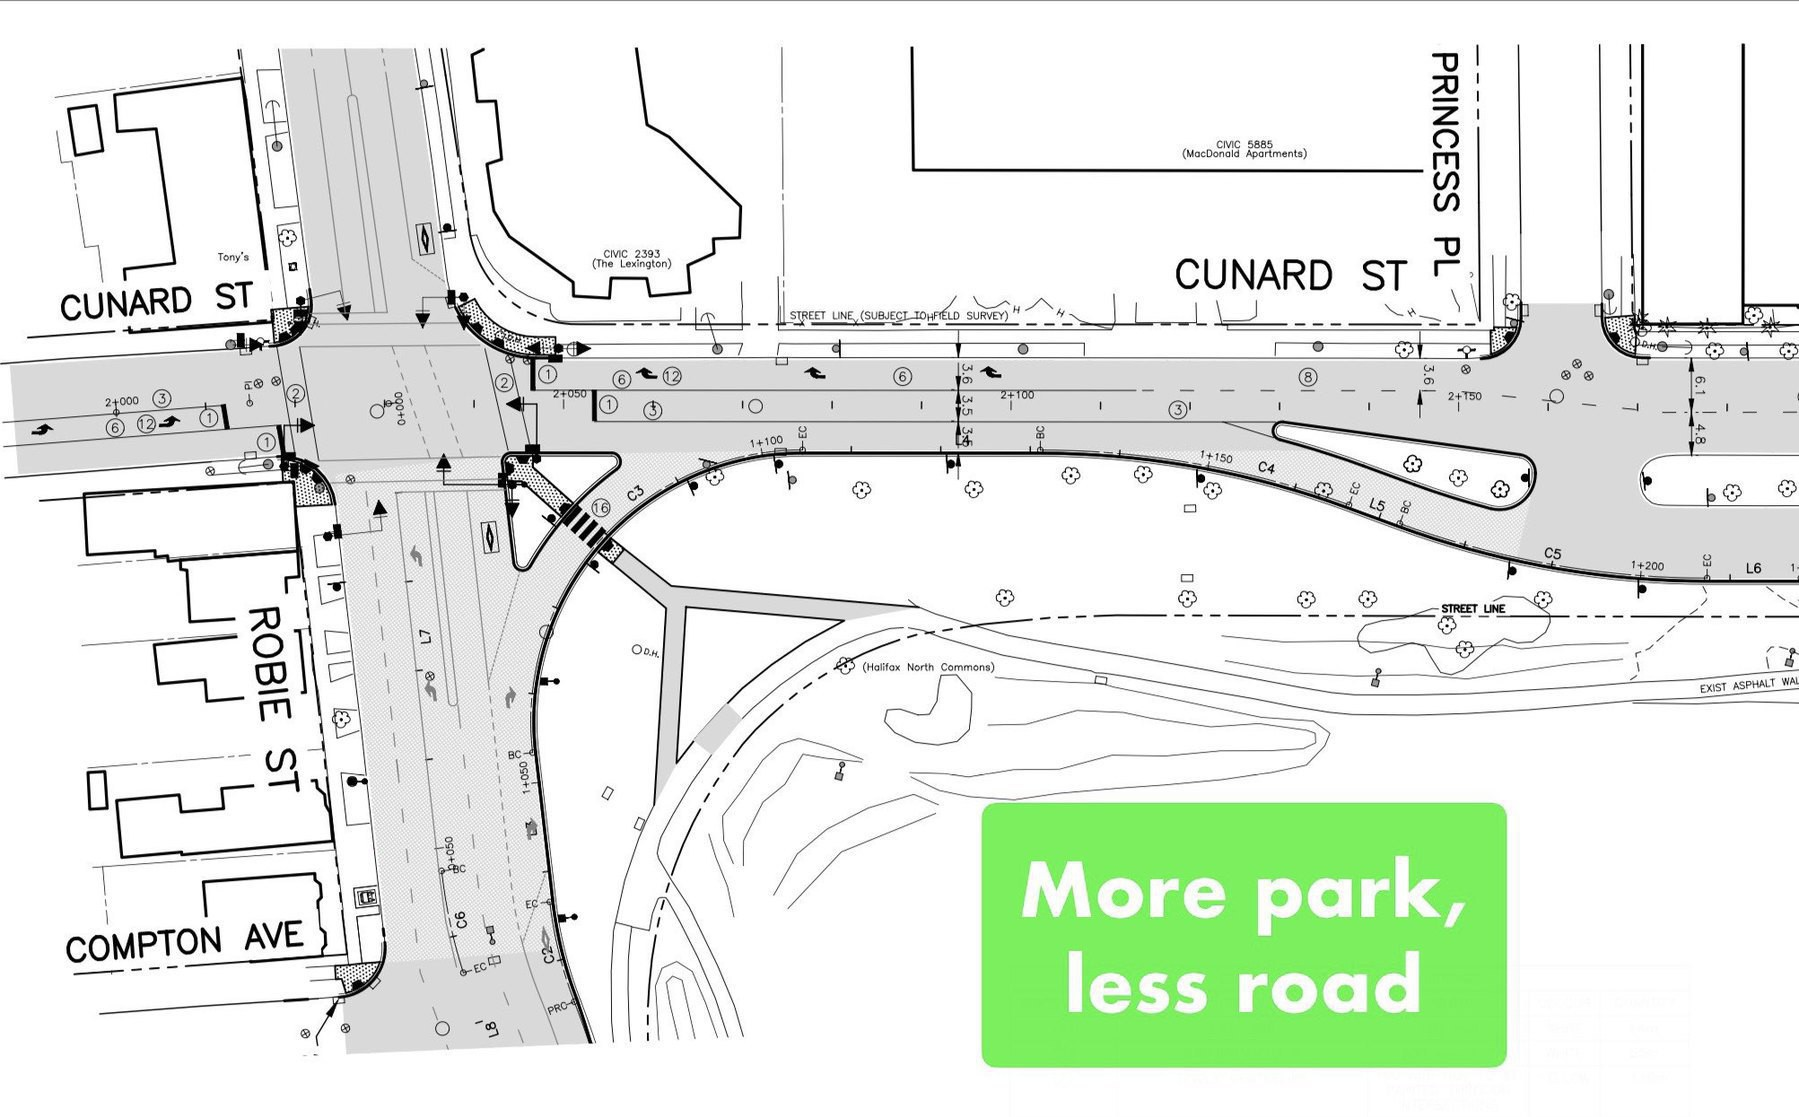 An engineering schematic showing the corner of the common, with much more space for park, and less road.